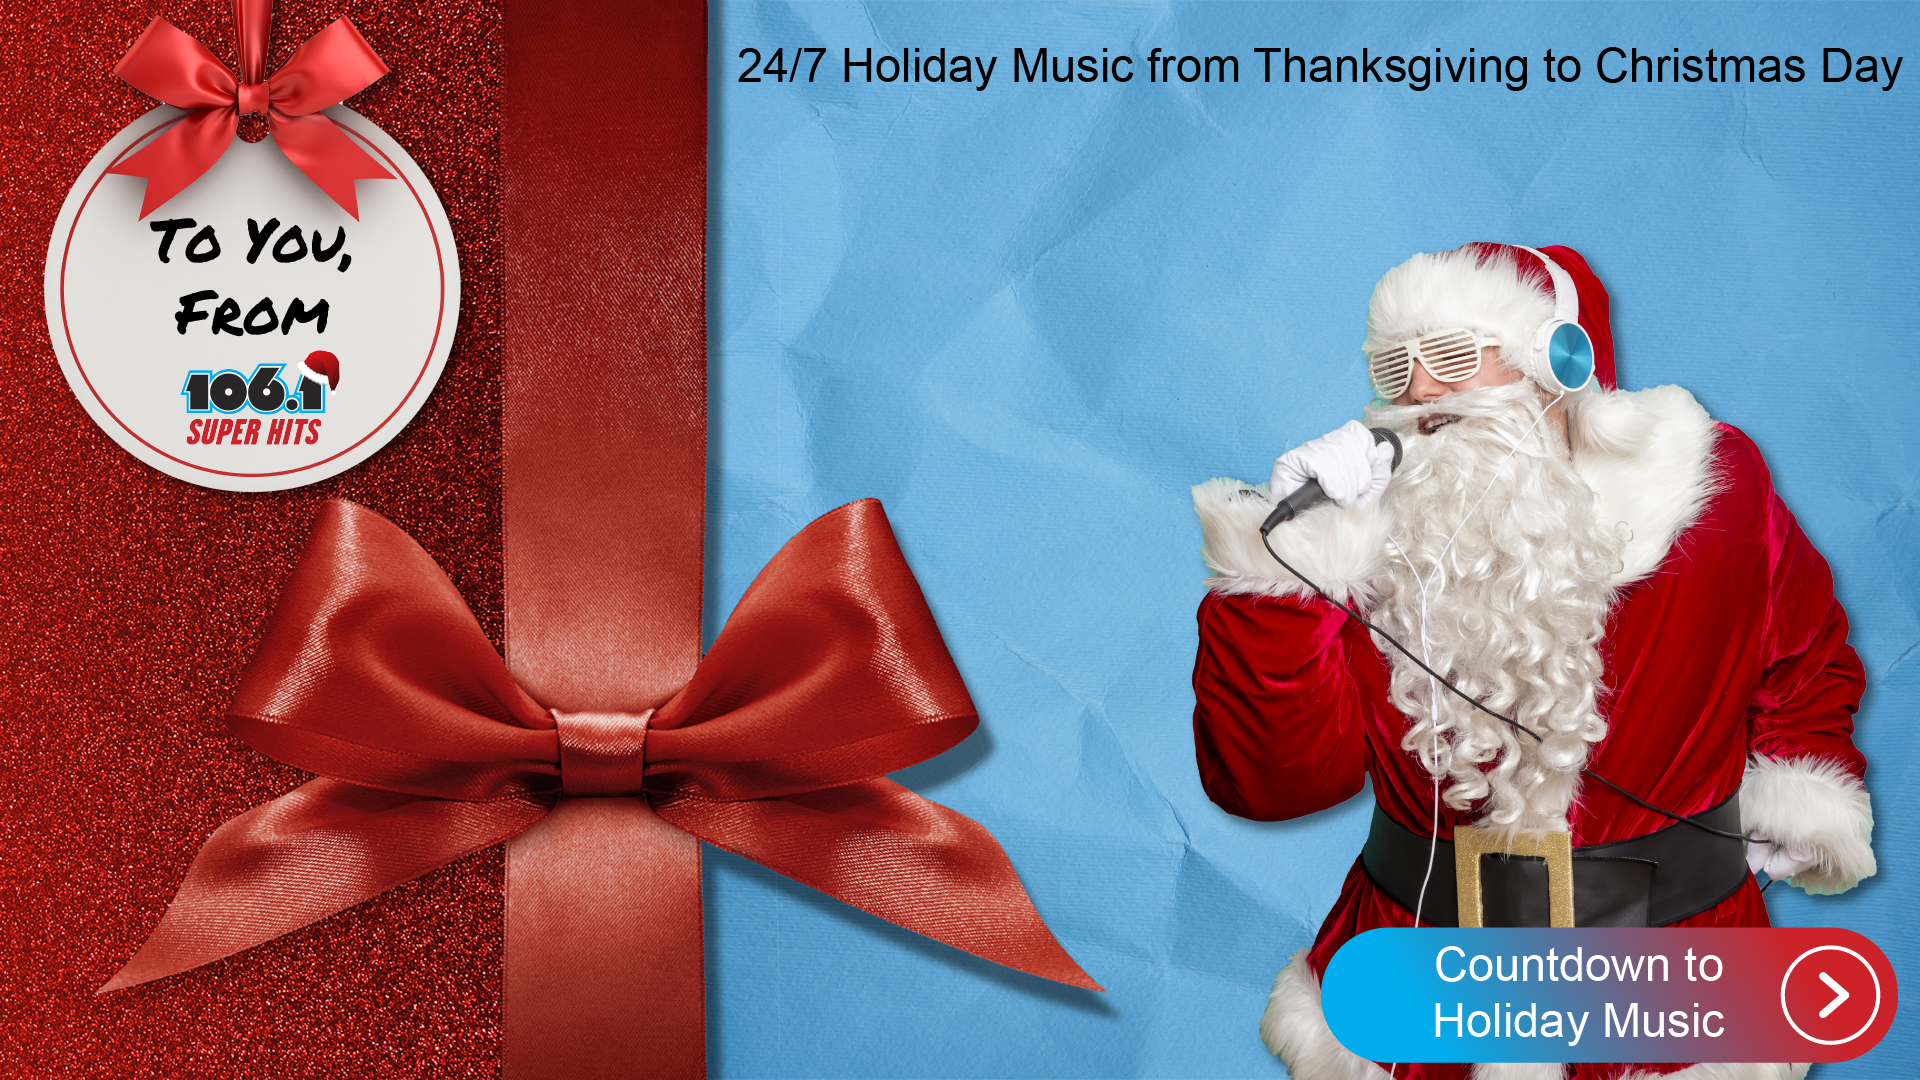 Christmas Music Programs 2020 Cedar Rapids, Ia Dubuque's Super Hits 106   70s, 80s, & 90s   KIYX